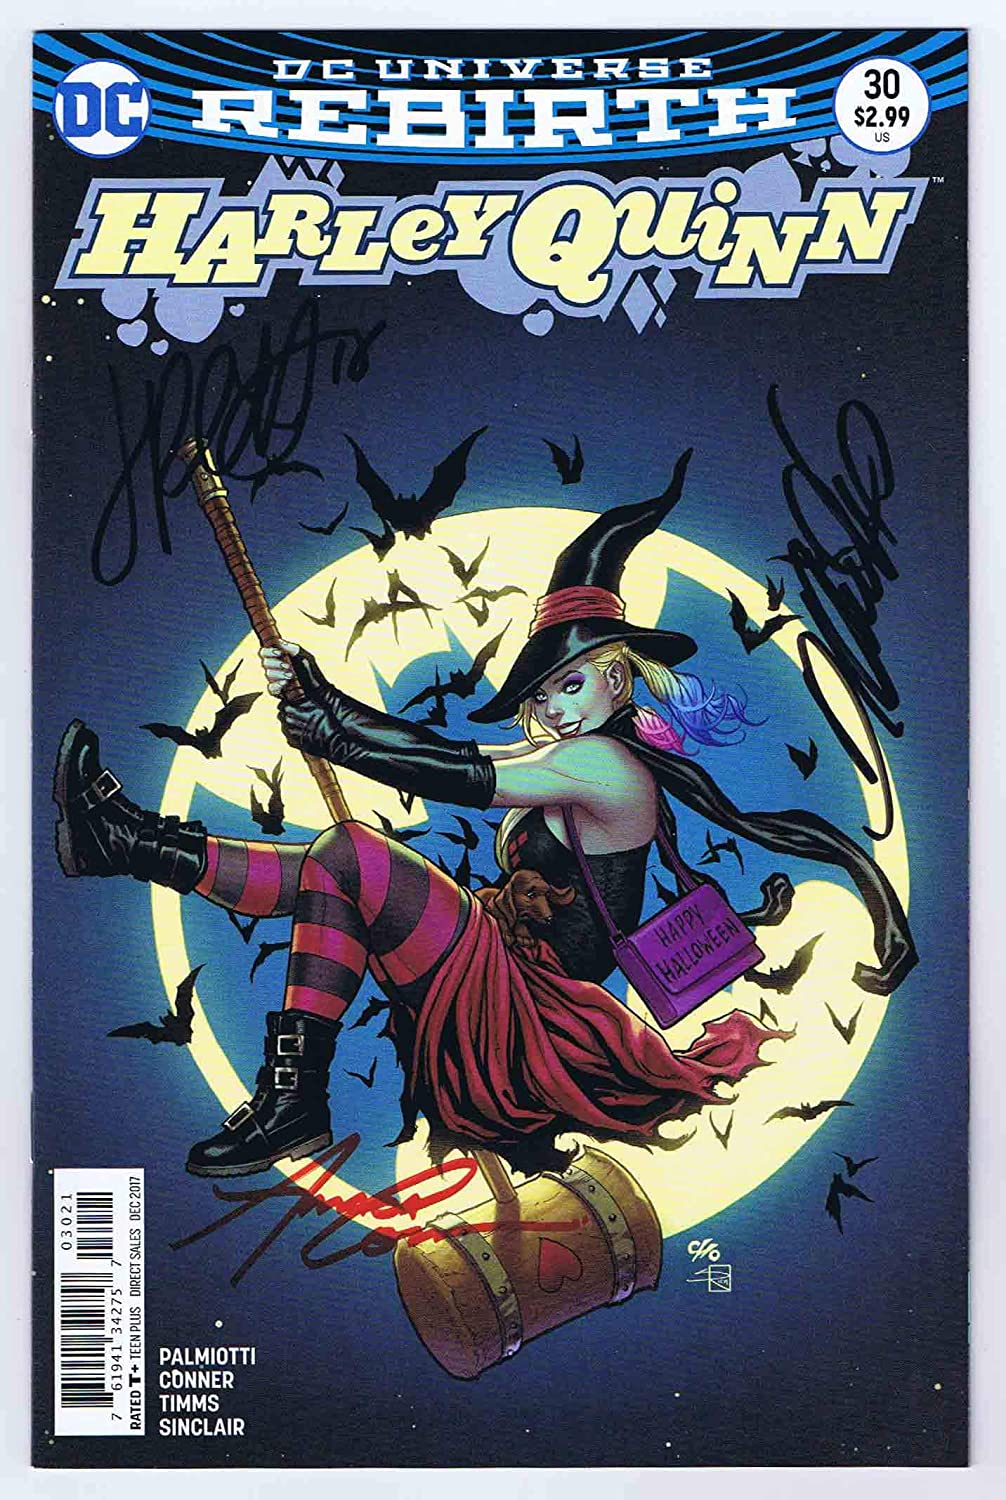 Harley Quinn #30 Variant NM Signed w/COA Conner/Palmiotti/Cho 2017 DC Comics